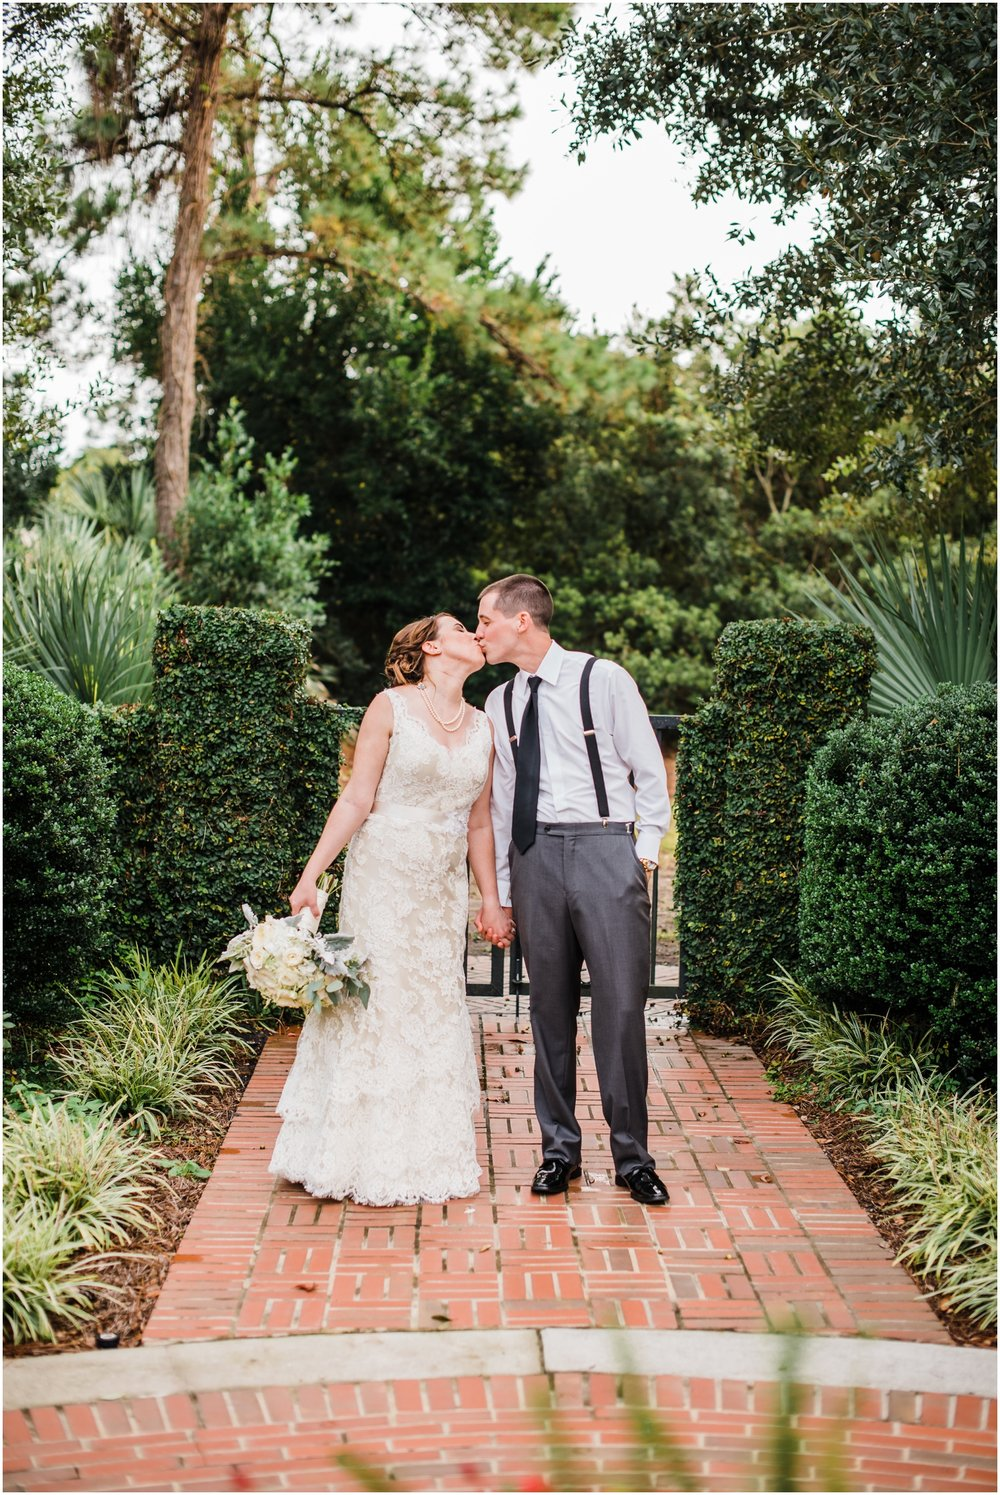 Pine-Lakes-Golf-and-Country-Club-Wedding-Myrtle-Beach-SC-Sarah-and-Colby-582.jpg